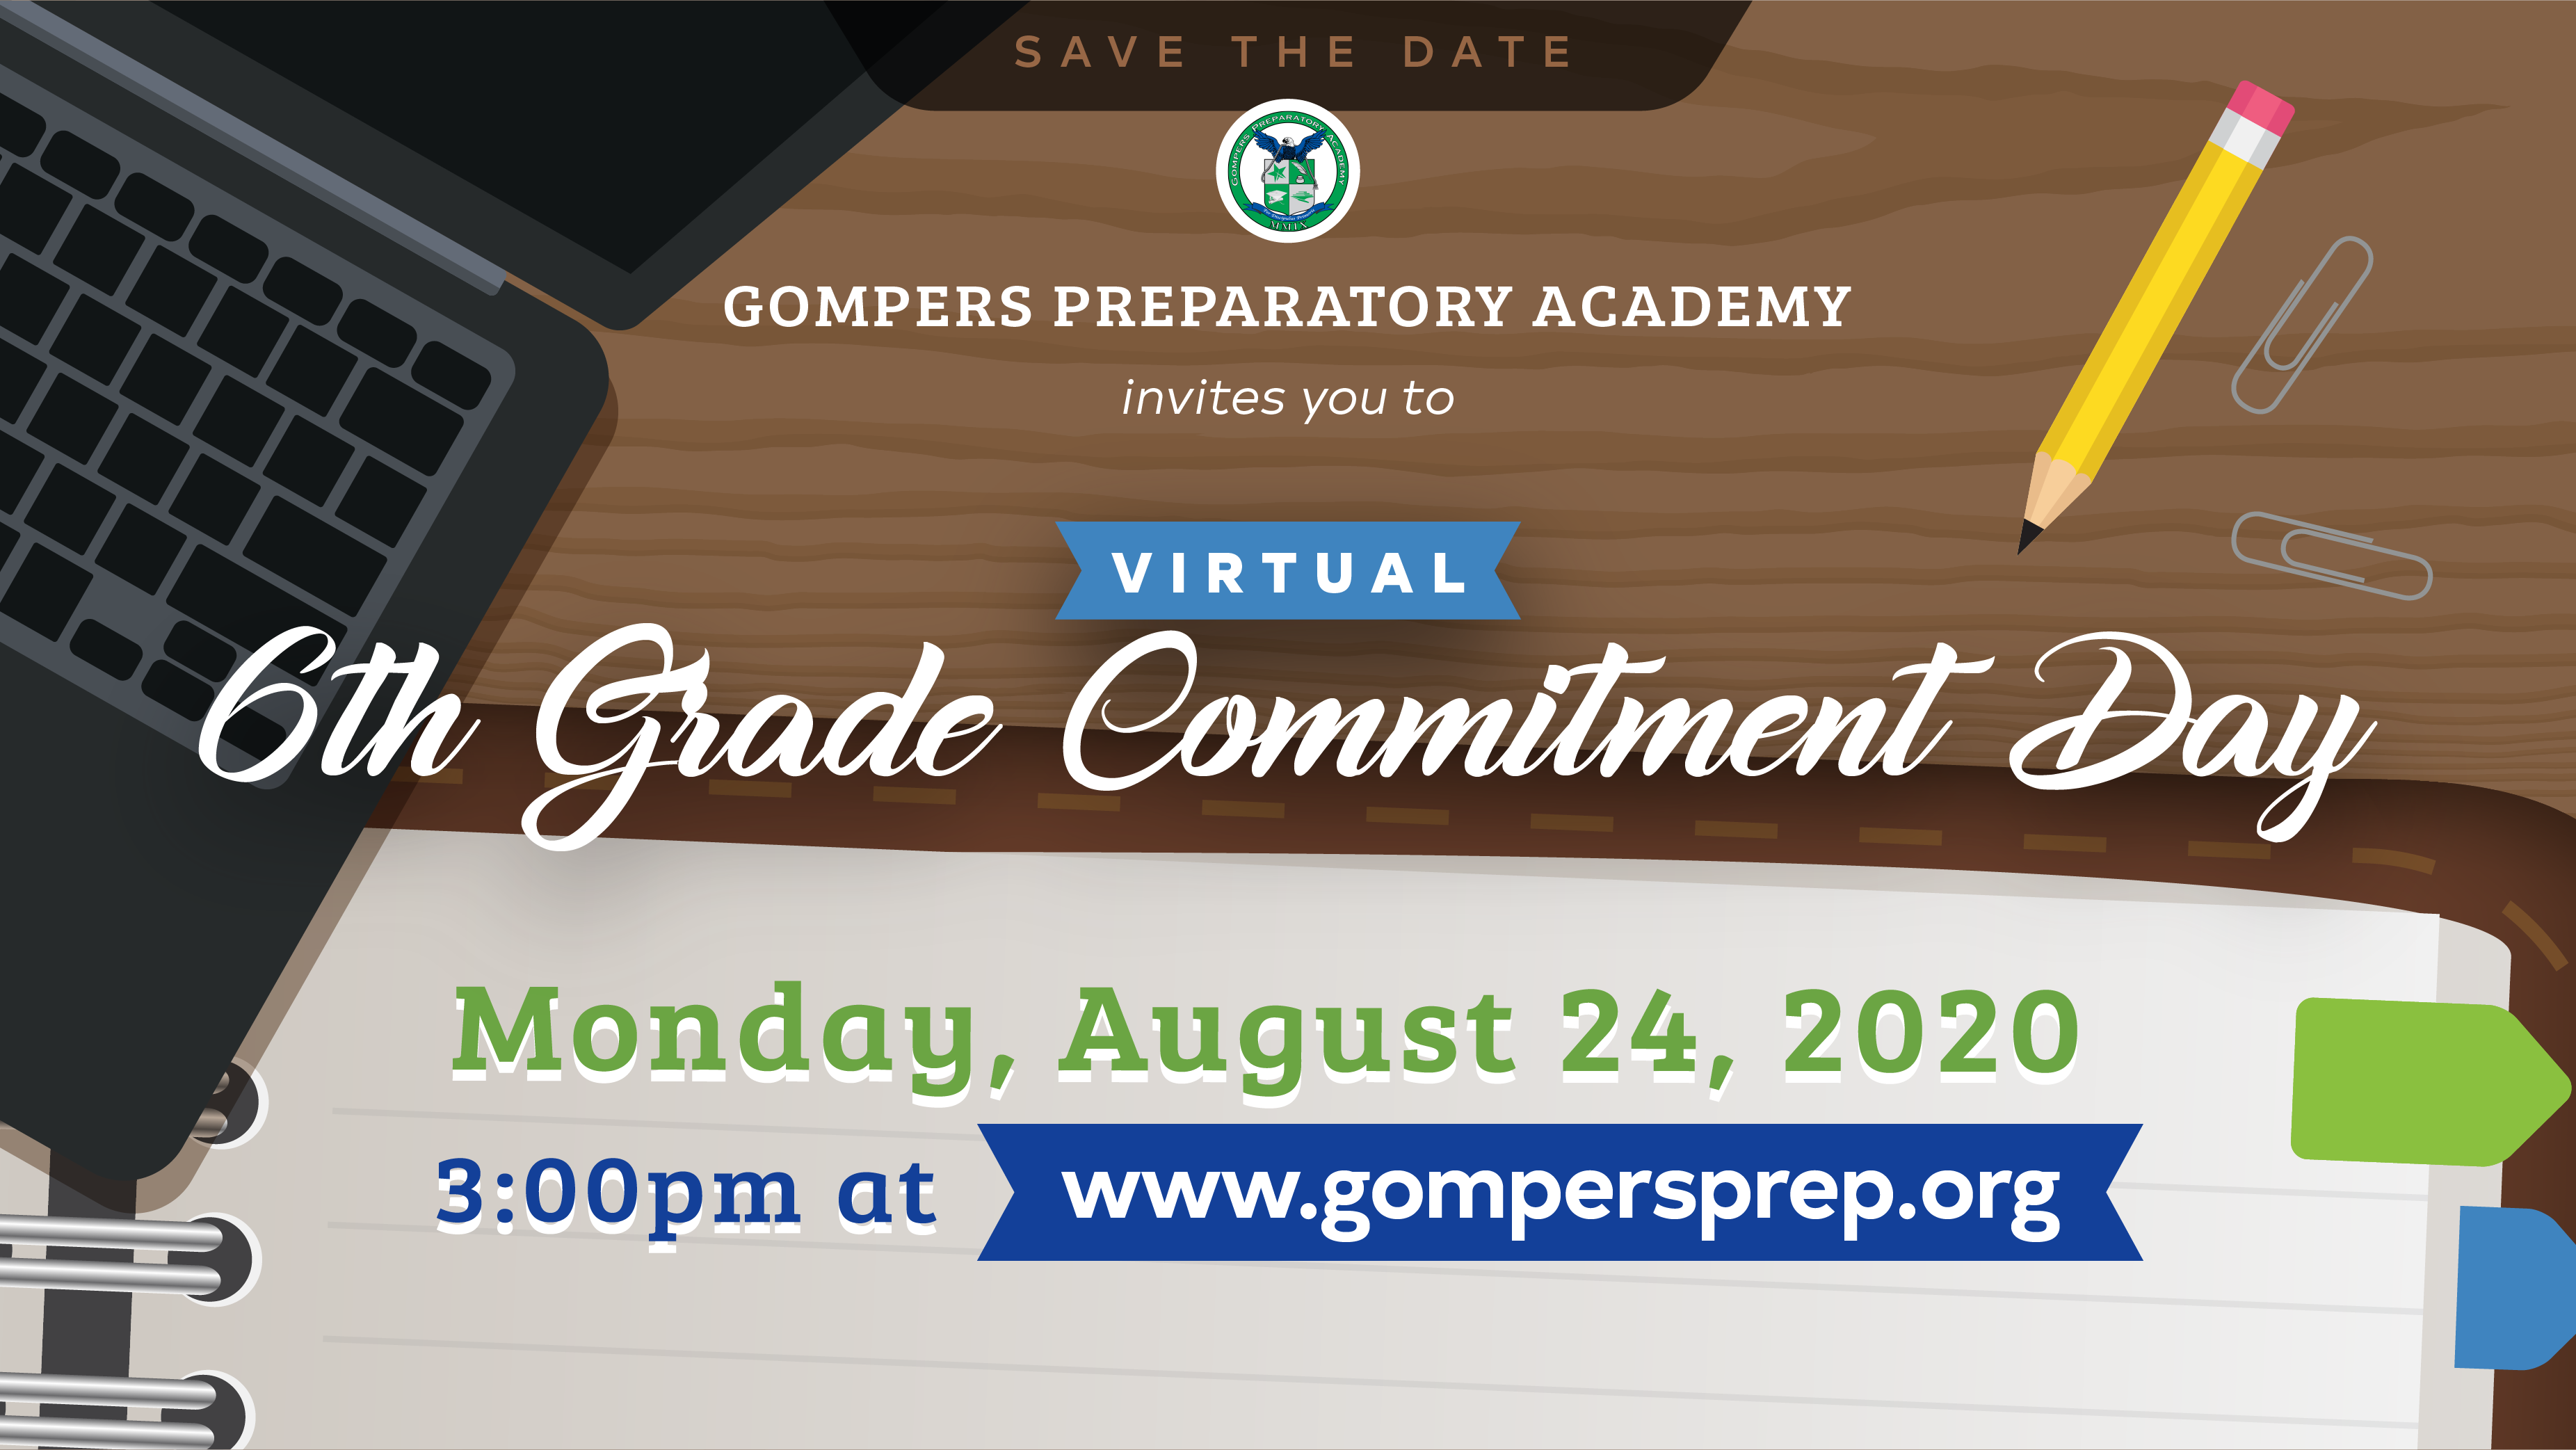 Save the Date: Virtual 6th Grade Commitment Day